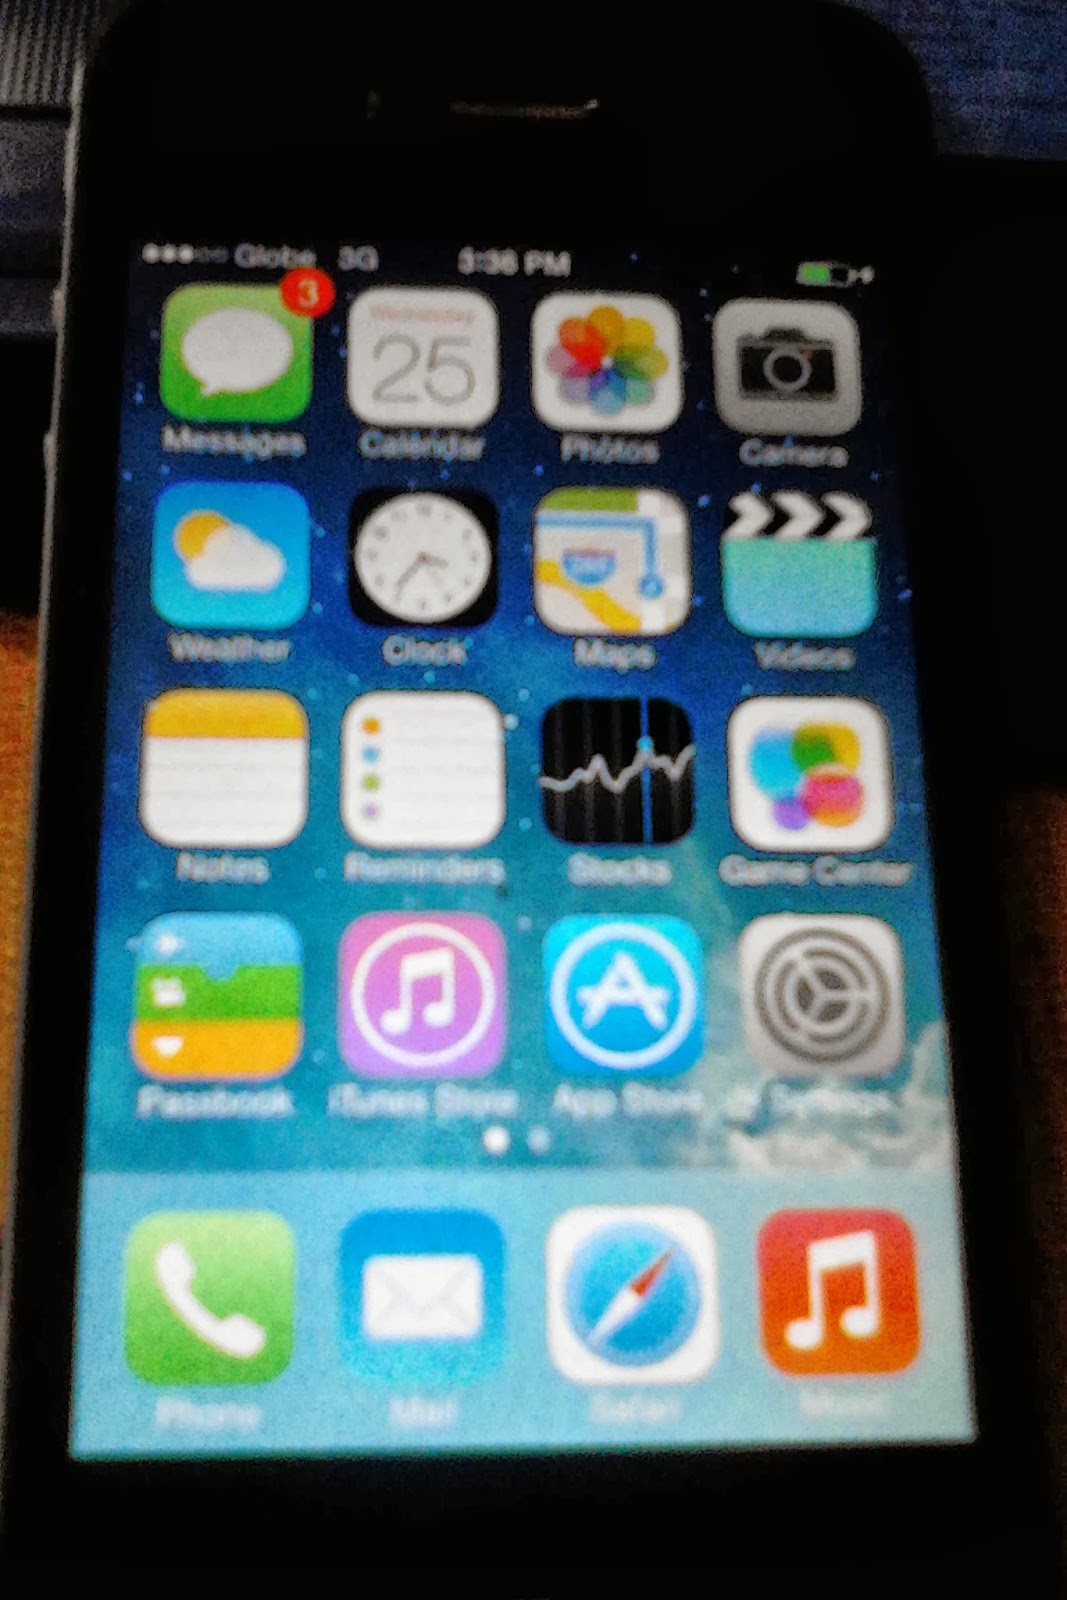 Restoring iphone4 to iOS 7 Without Error